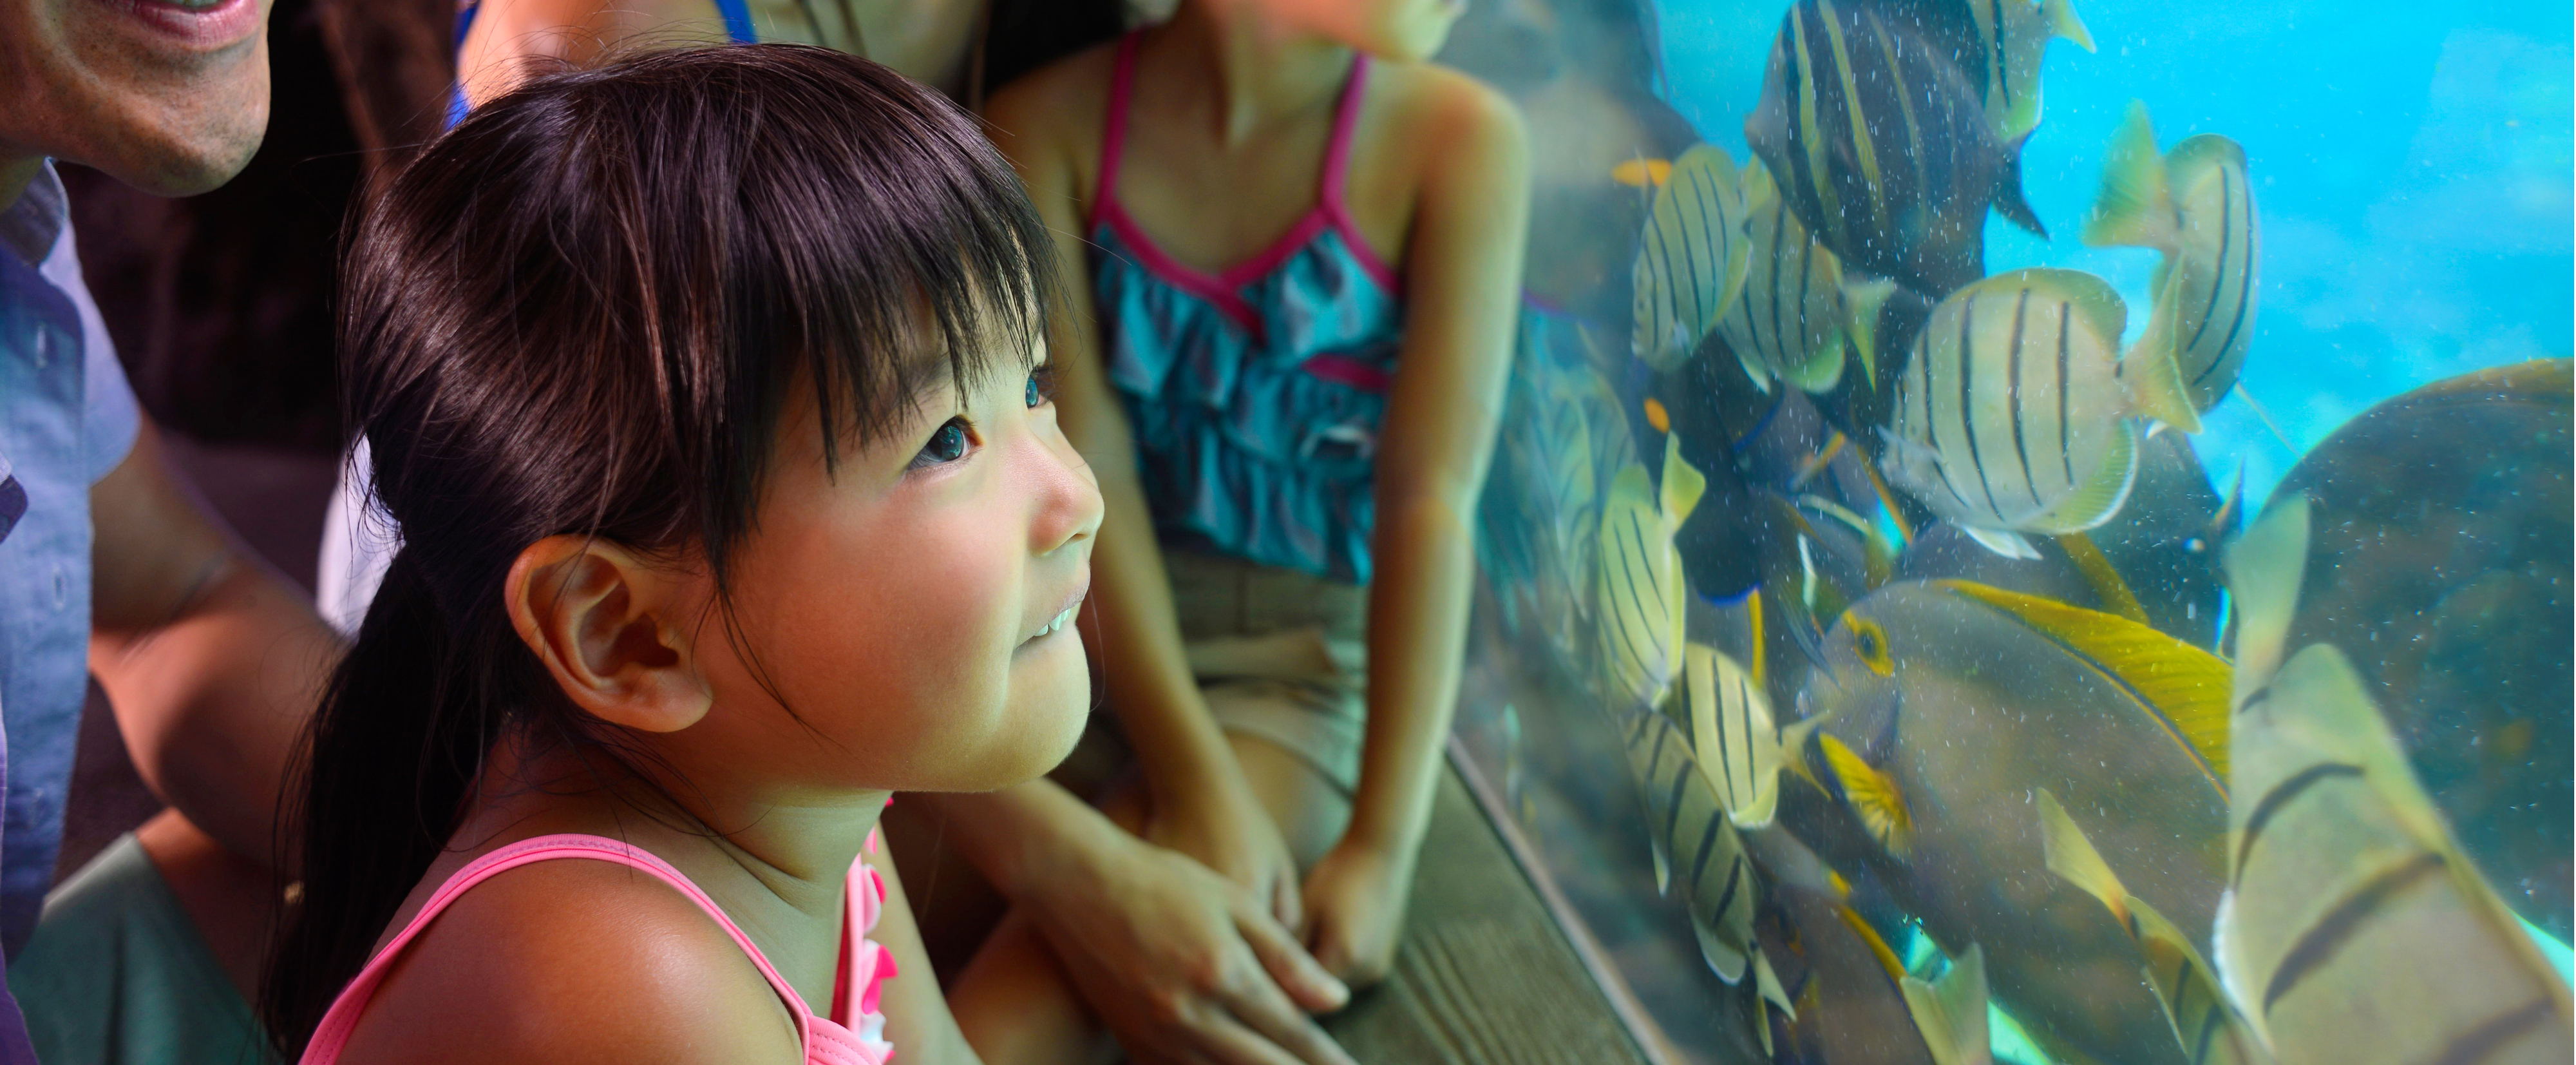 A young girl gazing in wonder toward tropical fish from behind transparent aquarium glass